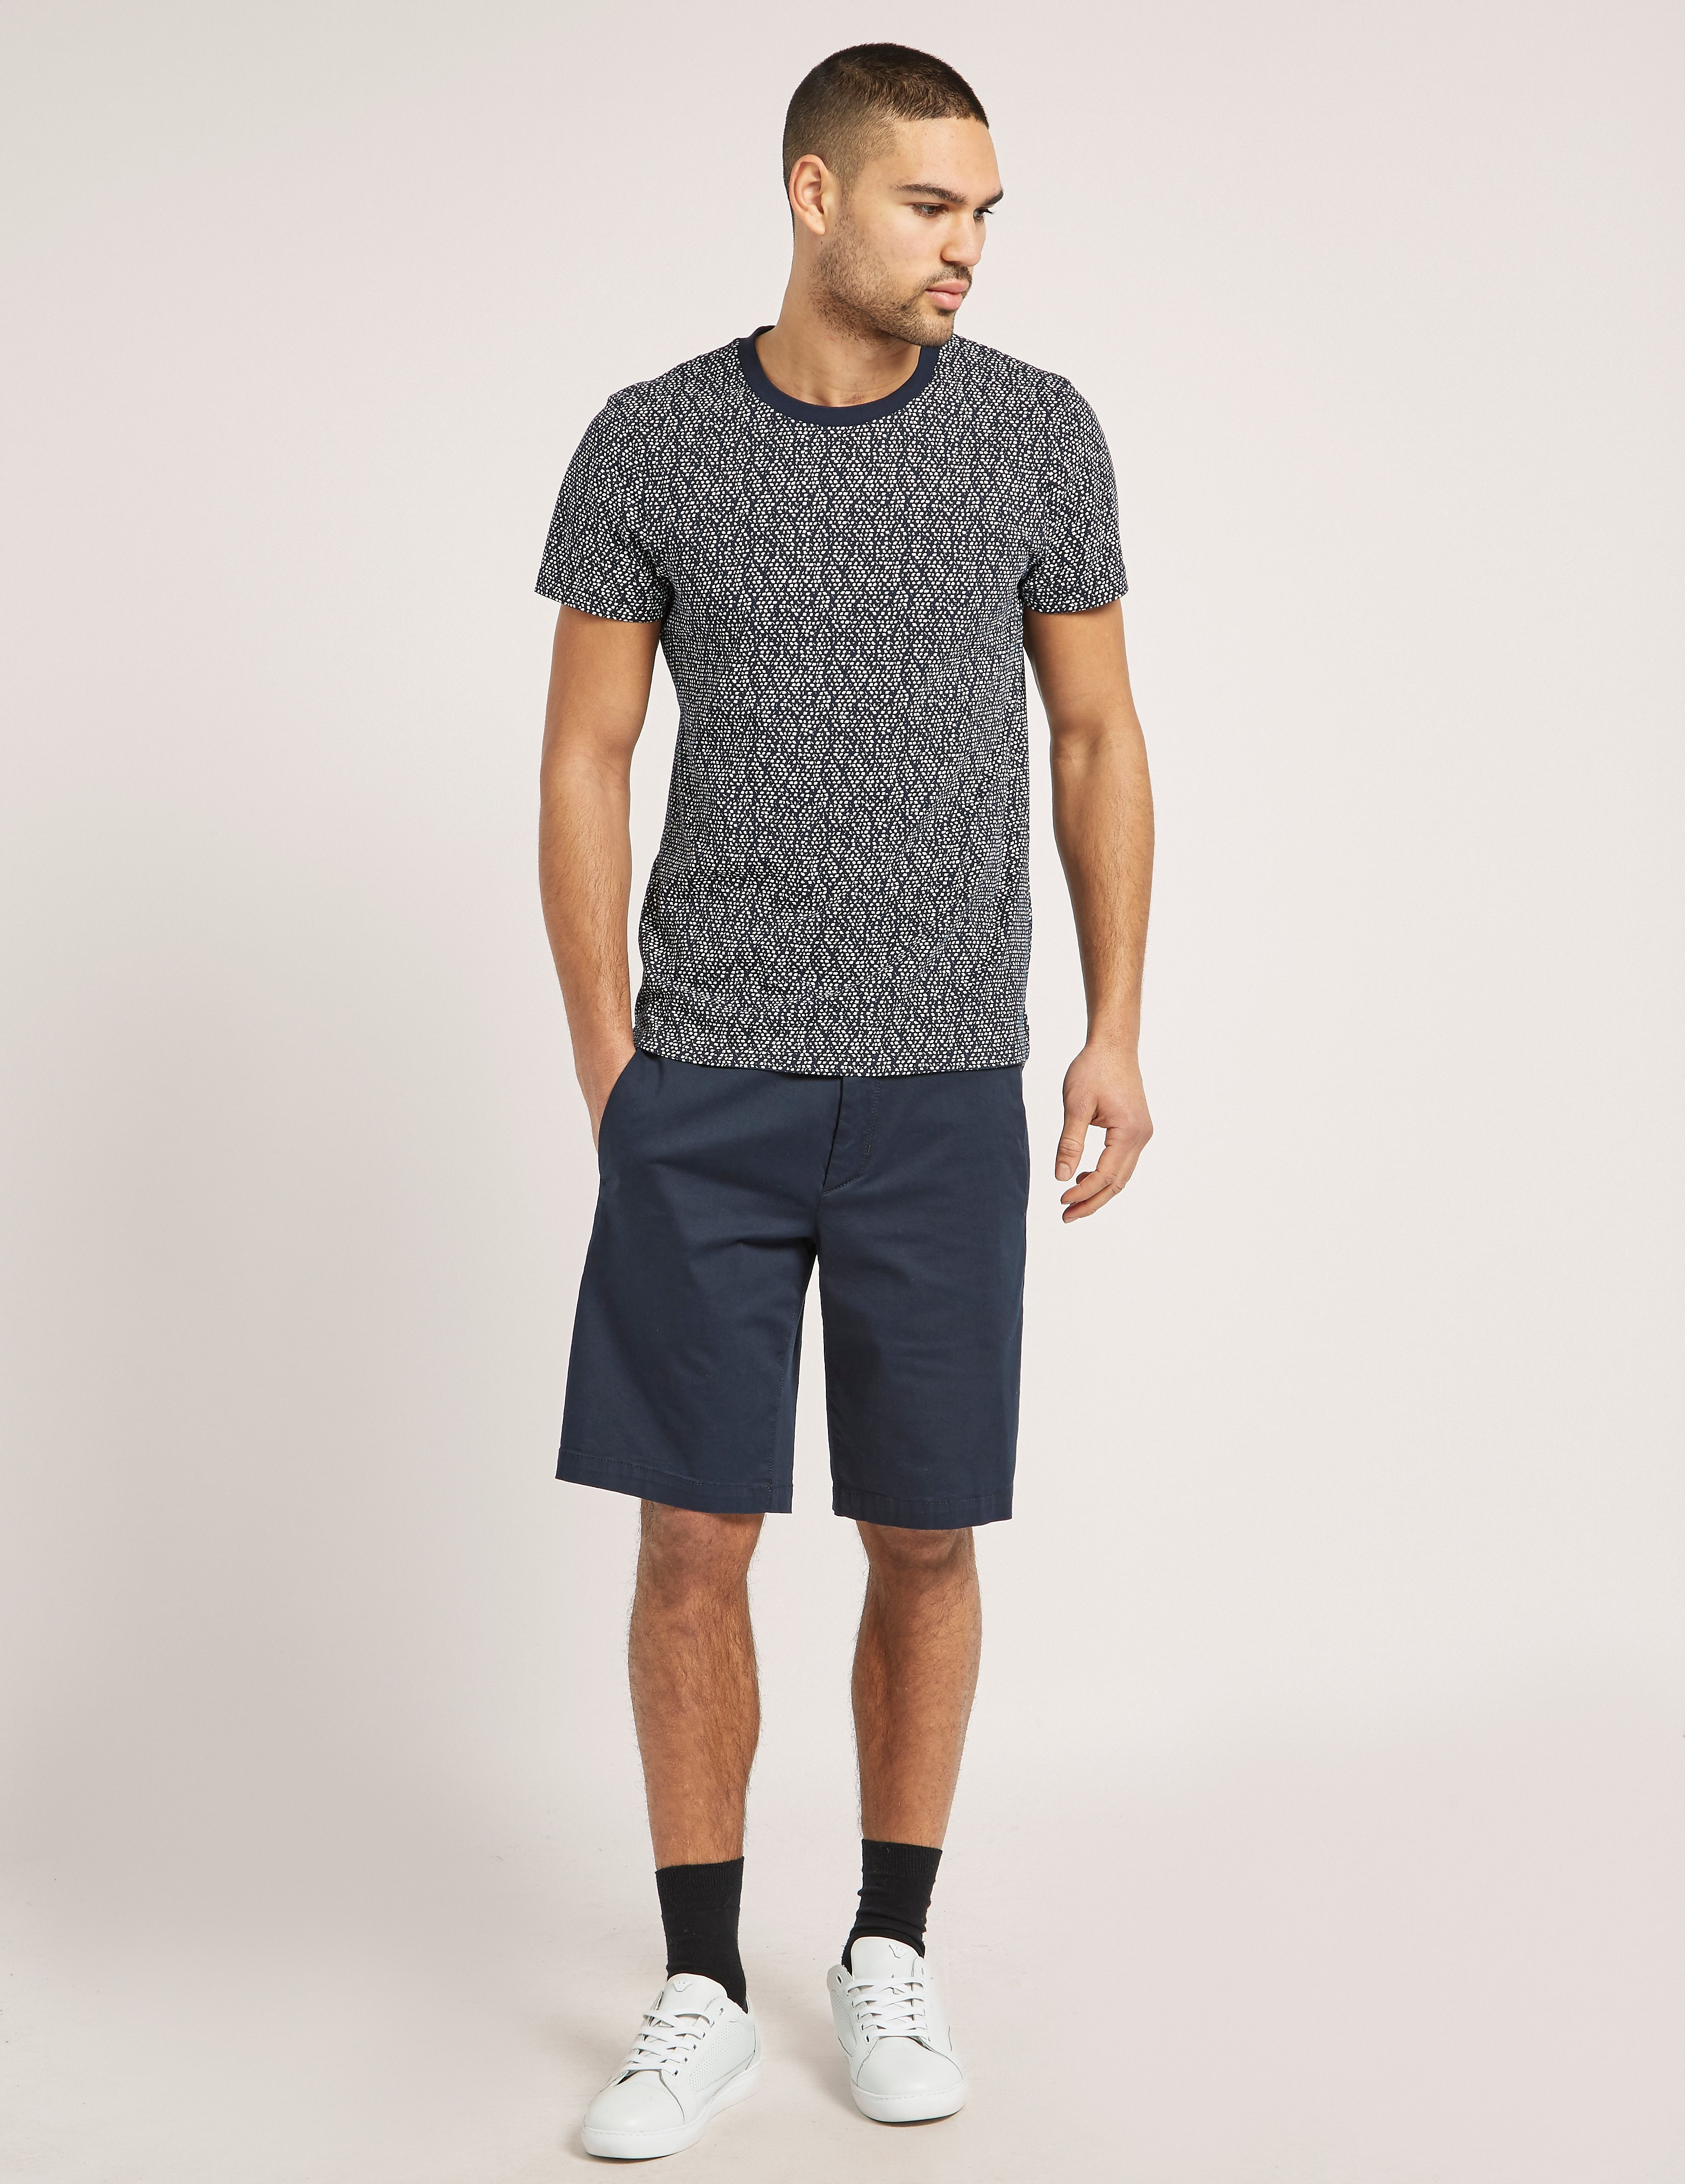 Samsoe & Samsoe Blue Dot Short Sleeve T-Shirt